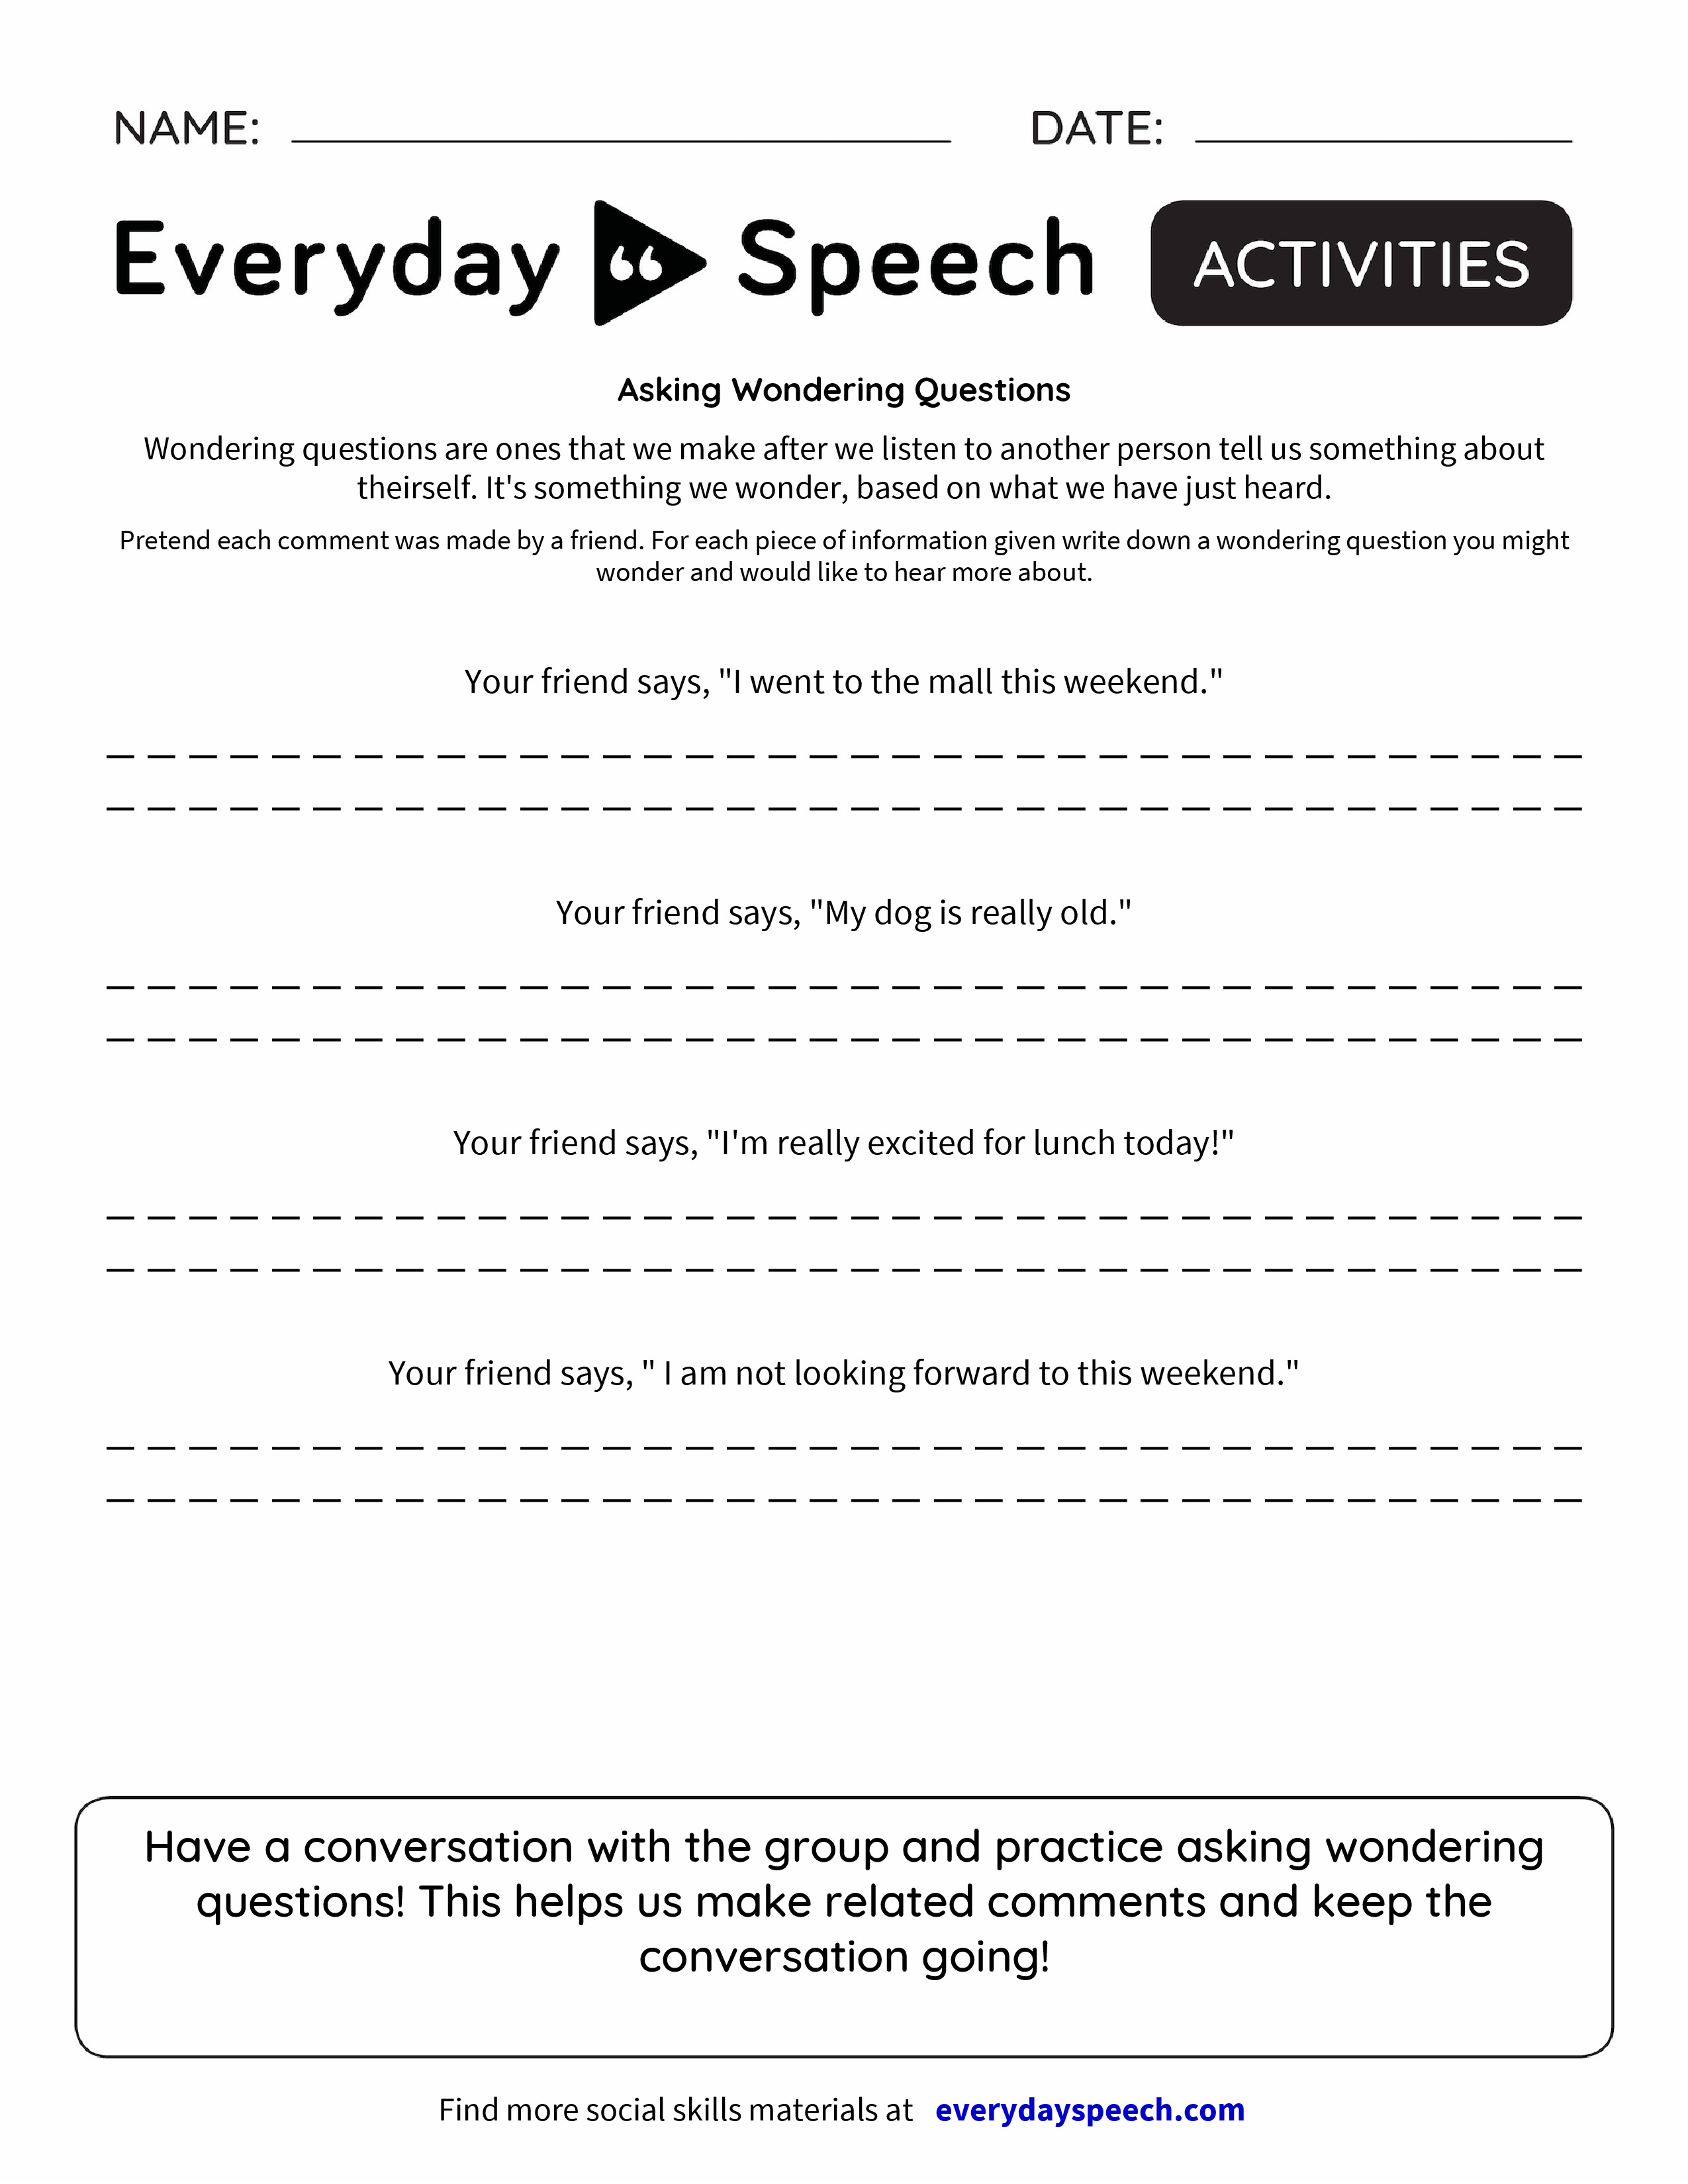 Worksheets For Wonder : Asking wondering questions everyday speech